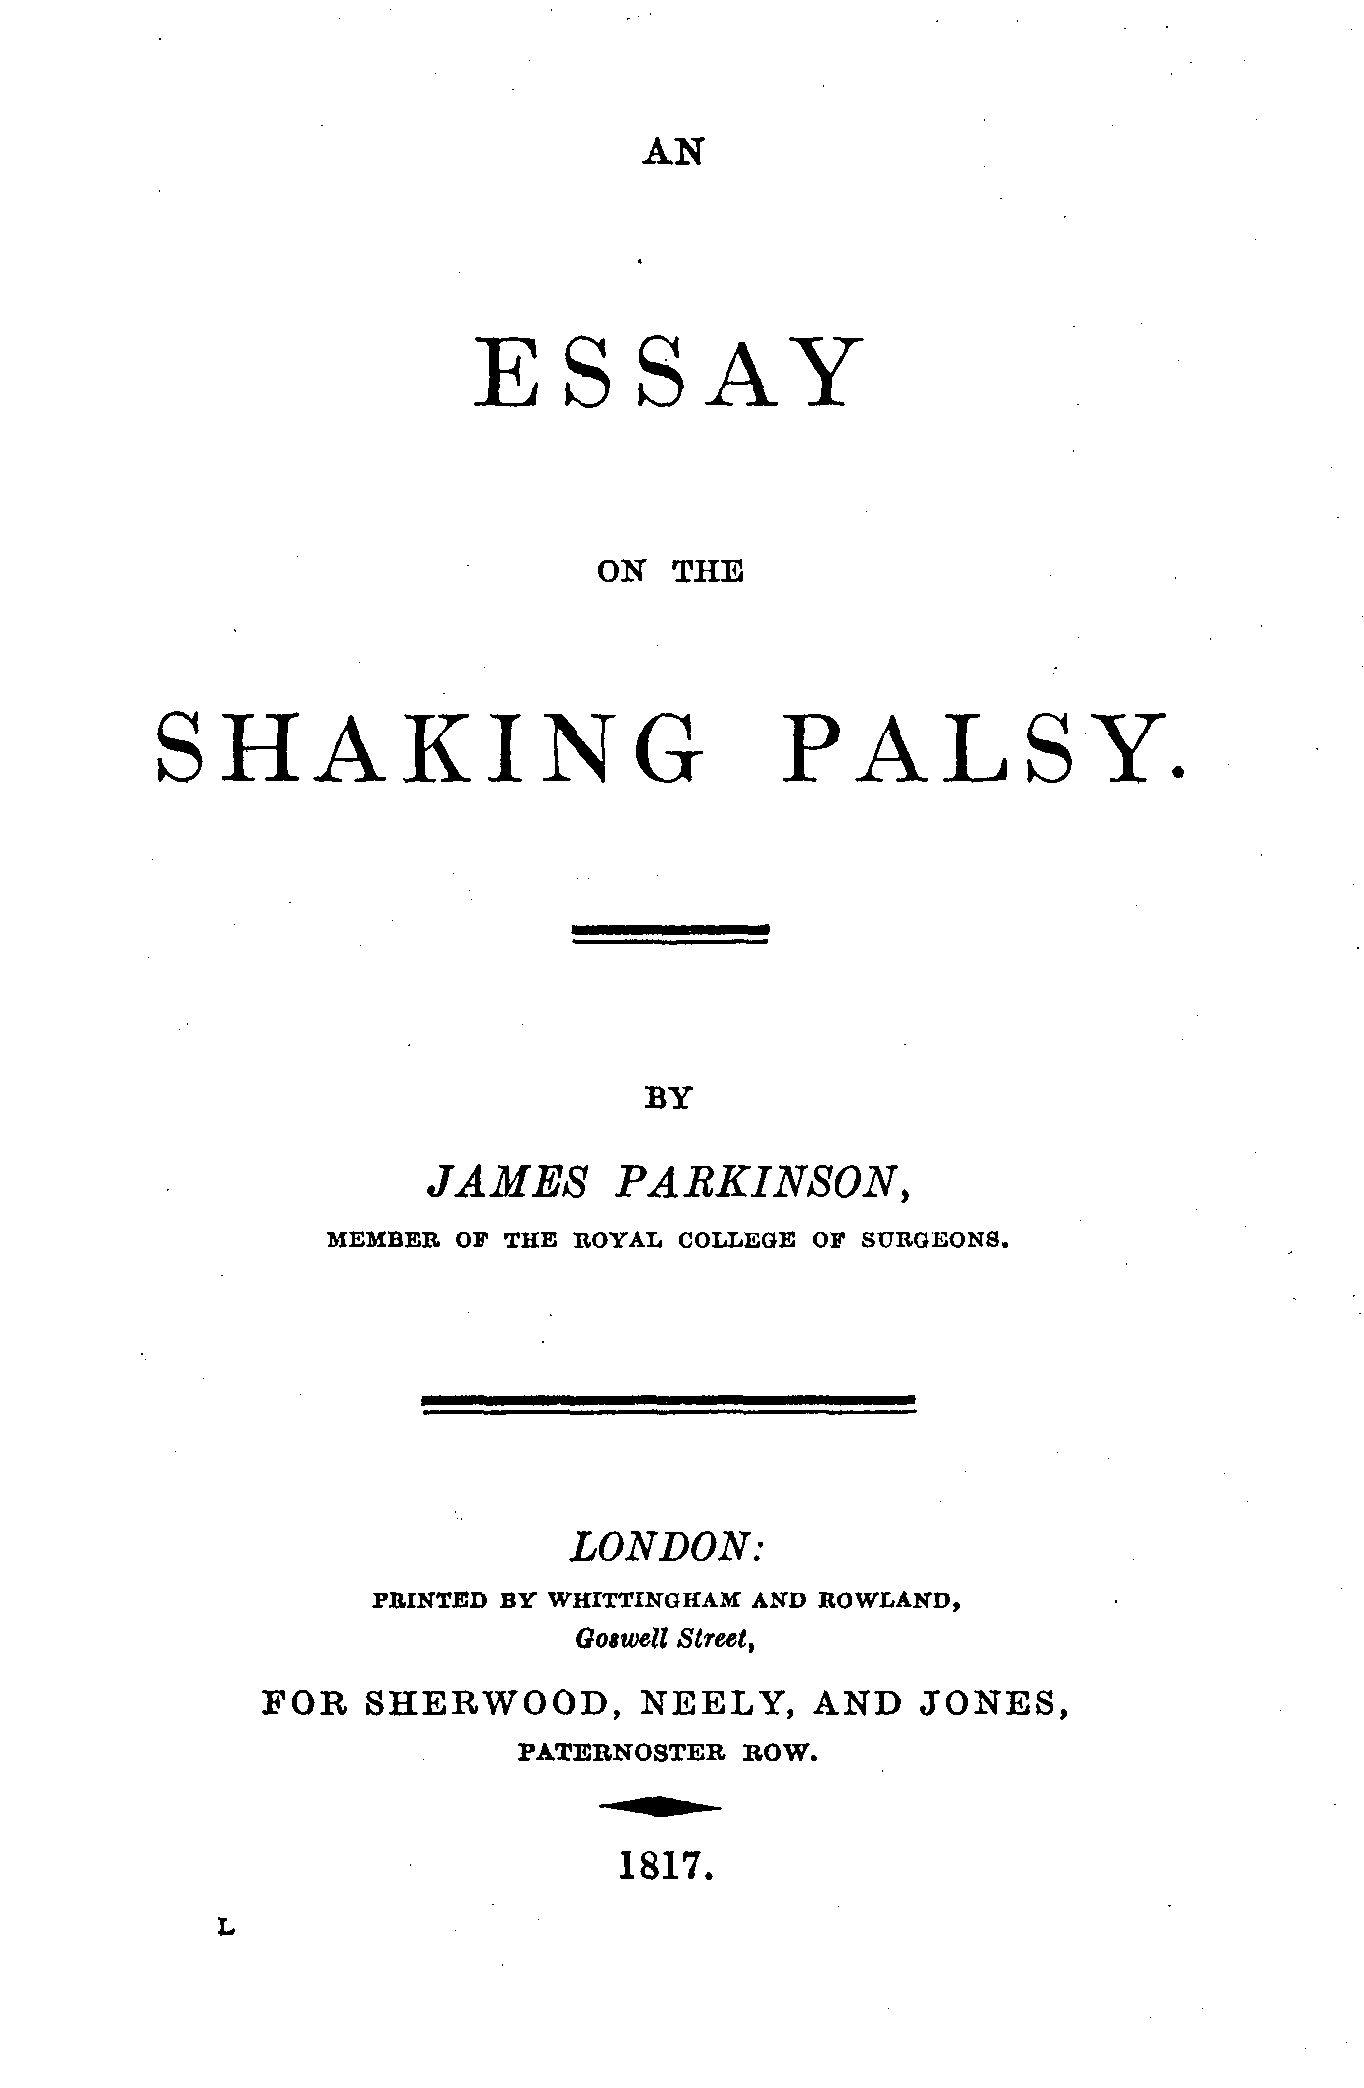 file parkinson an essay on the shaking palsy title page png file parkinson an essay on the shaking palsy title page png